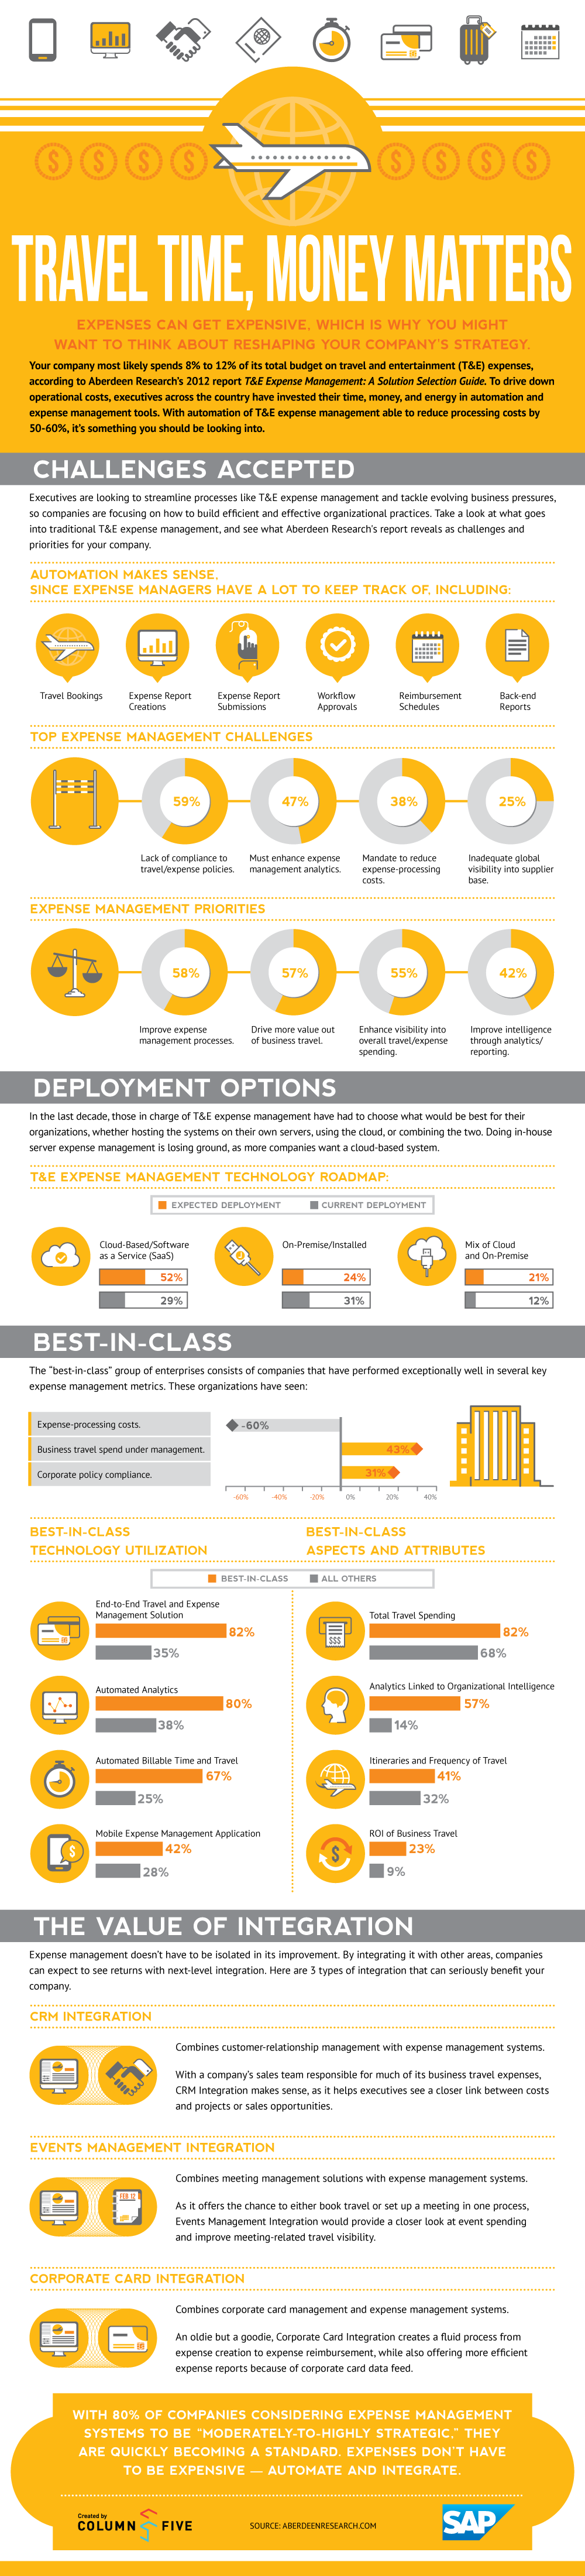 SAP-TOD_infographic_020713.png